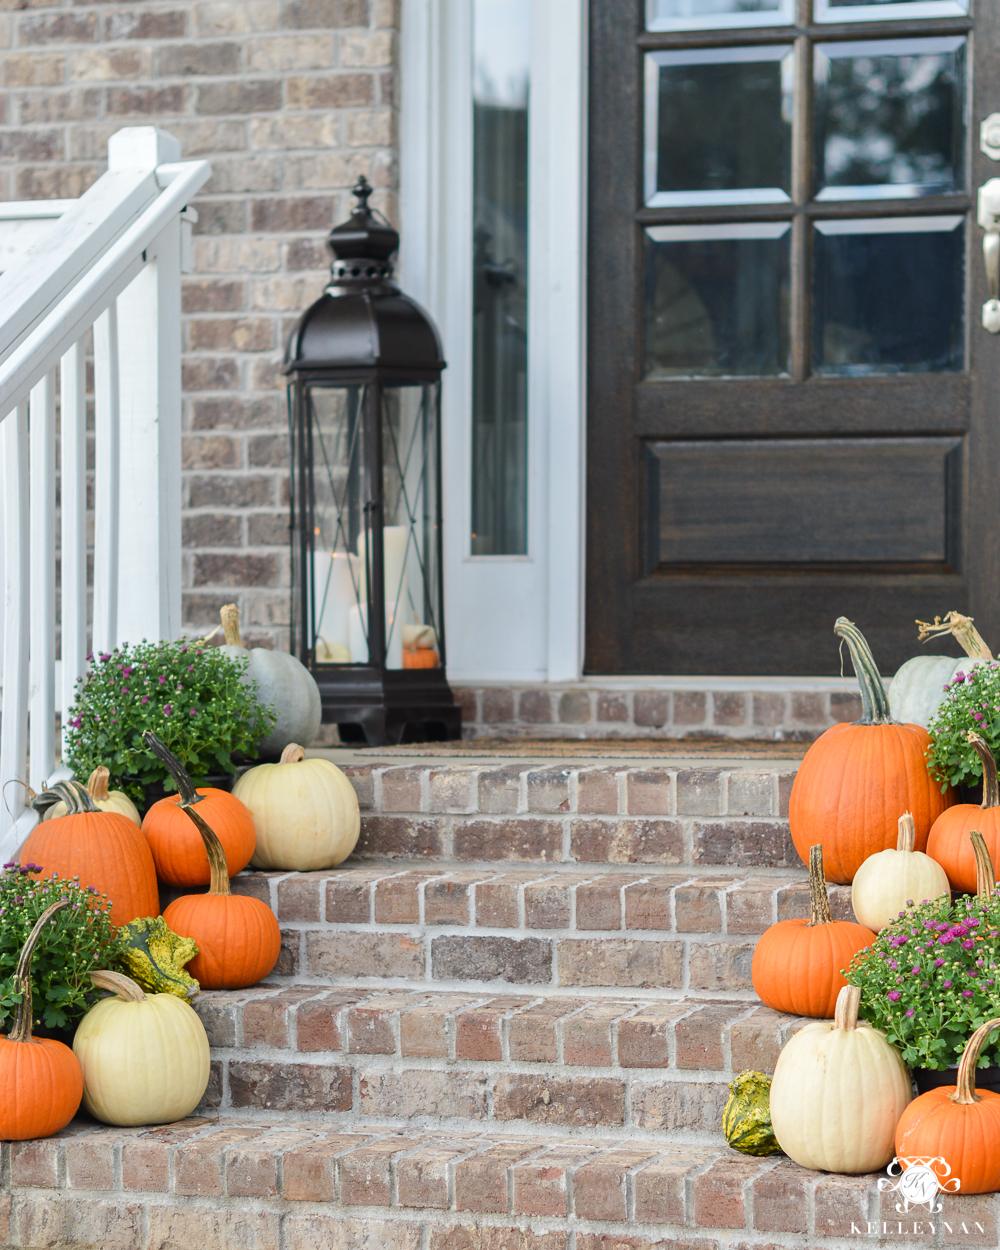 2017 Fall Home Tour with Yellow and Orange Leaves- pumpkins on front porch steps with lanterns